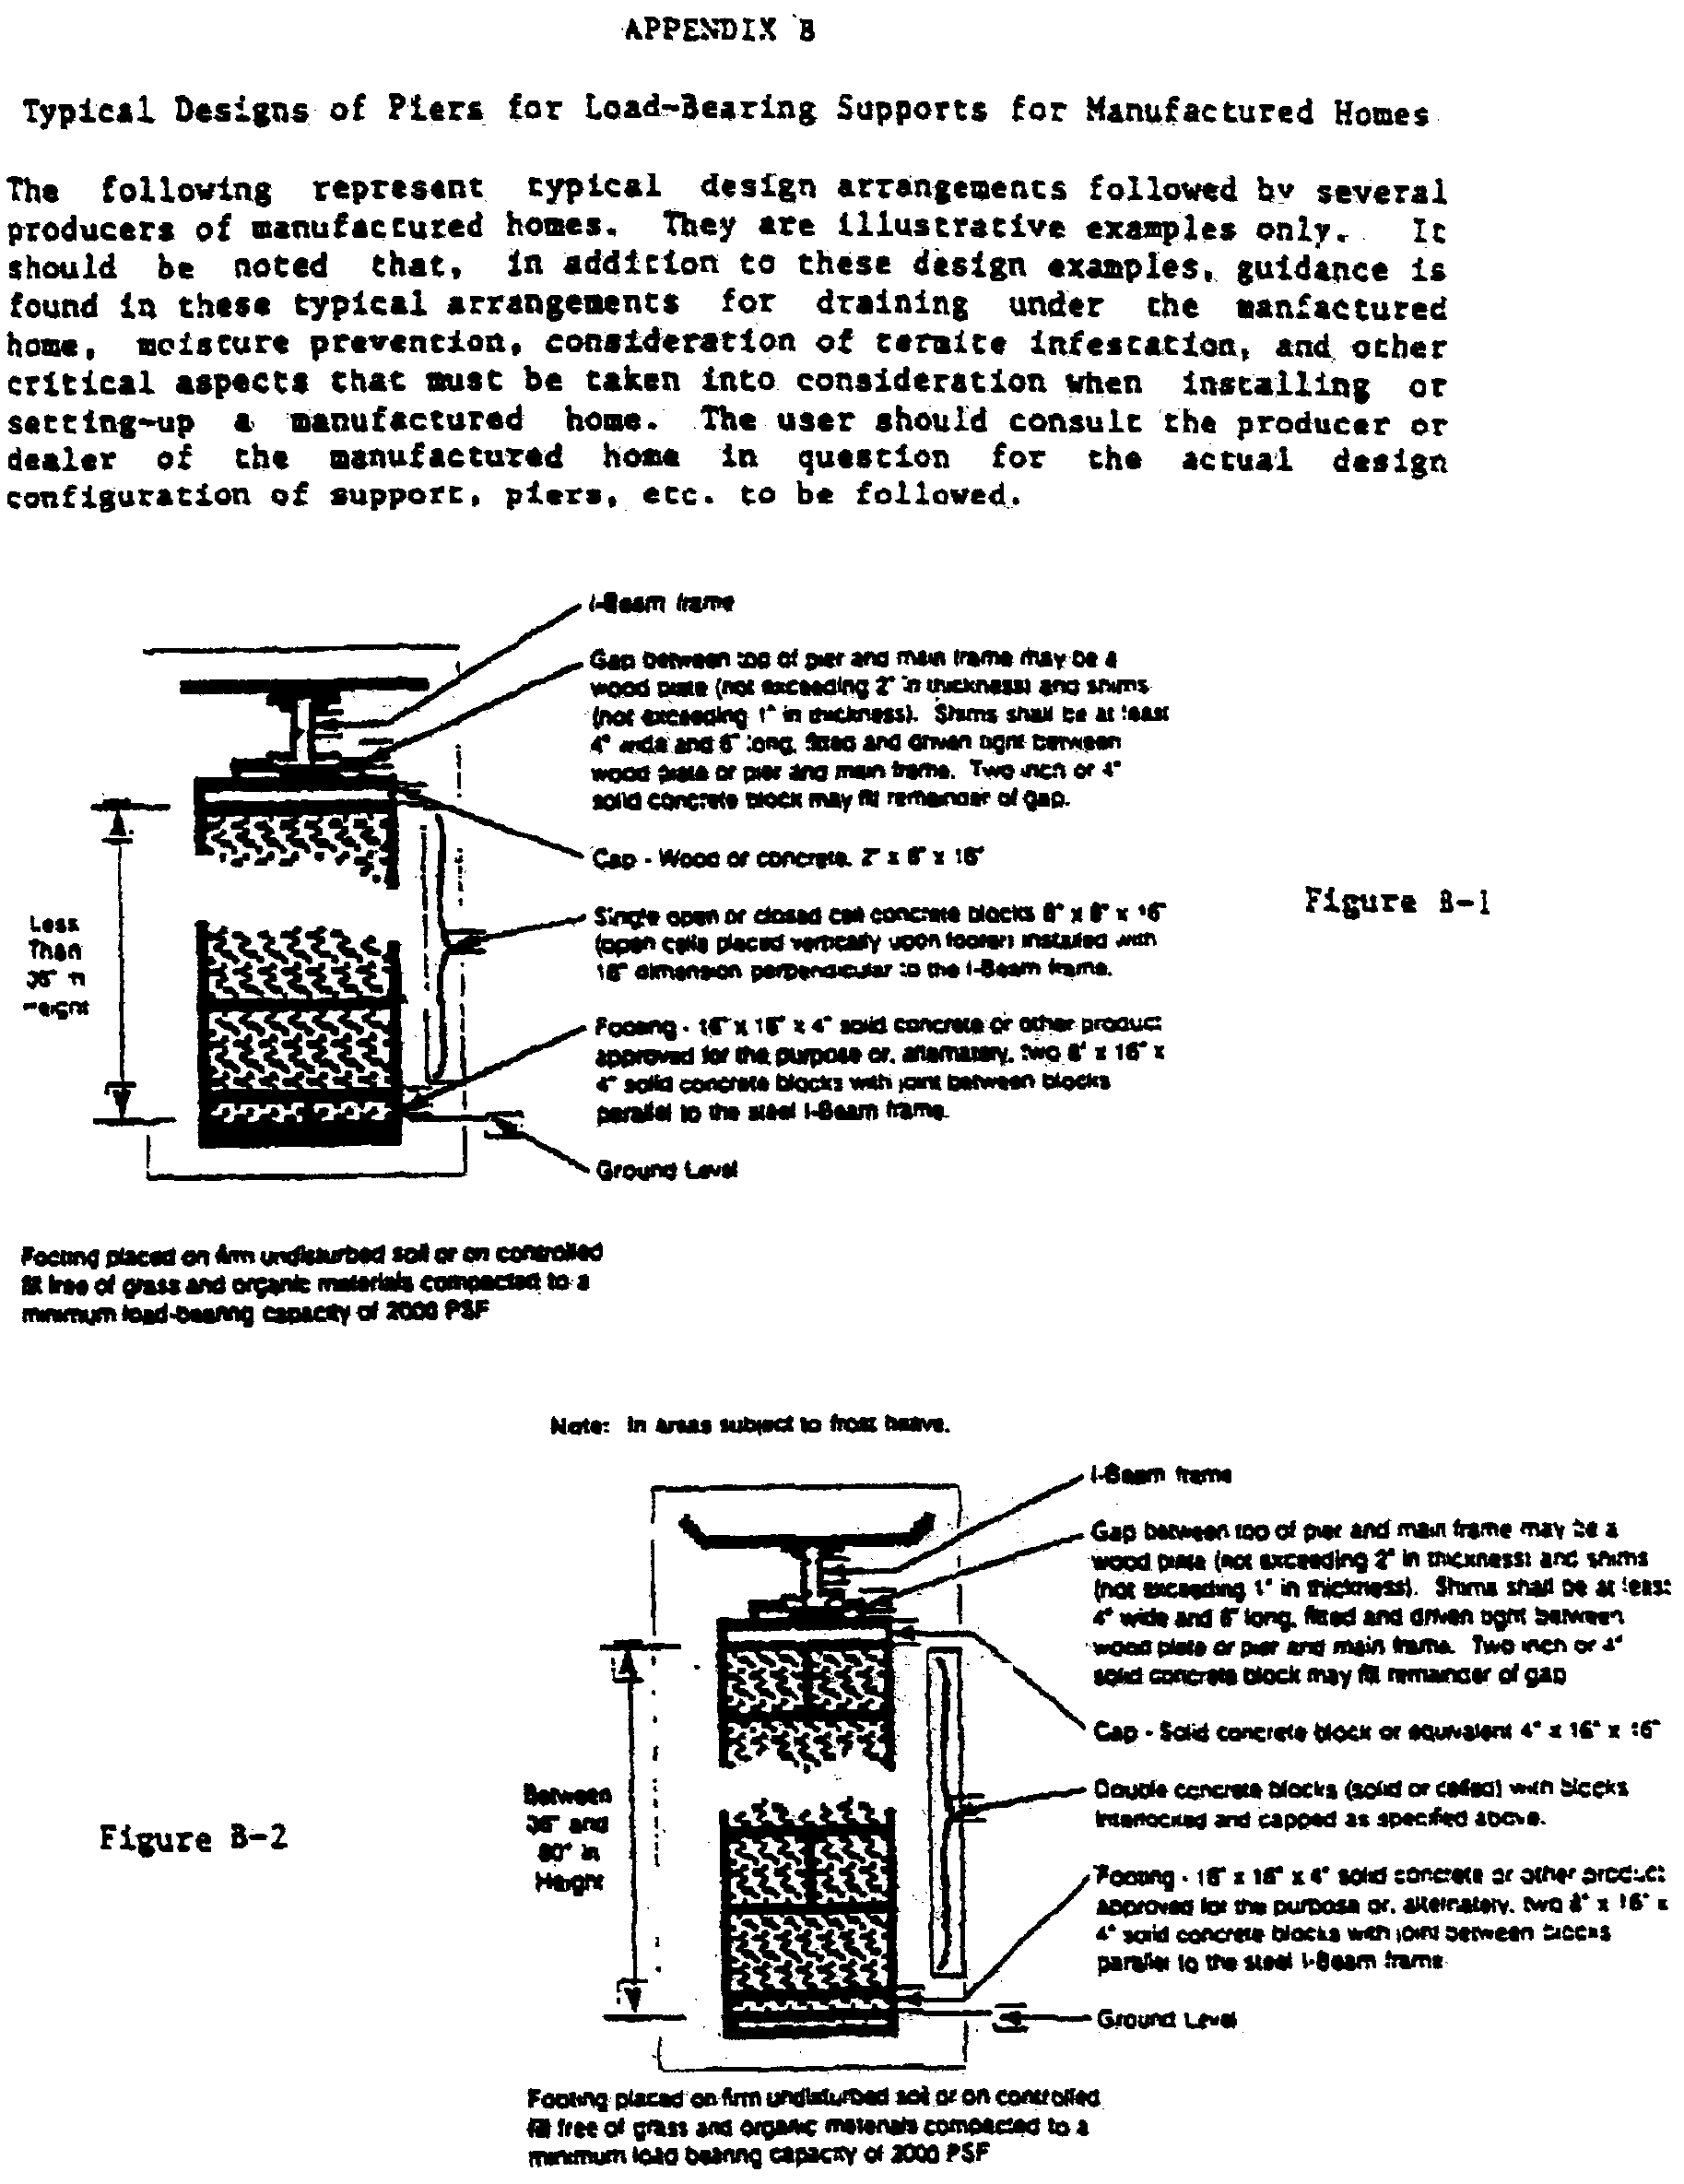 TYPICAL DESIGNS FOR LOAD-BEARING SUPPORTS FOR MANUFACTURED HOMES - Figure 1